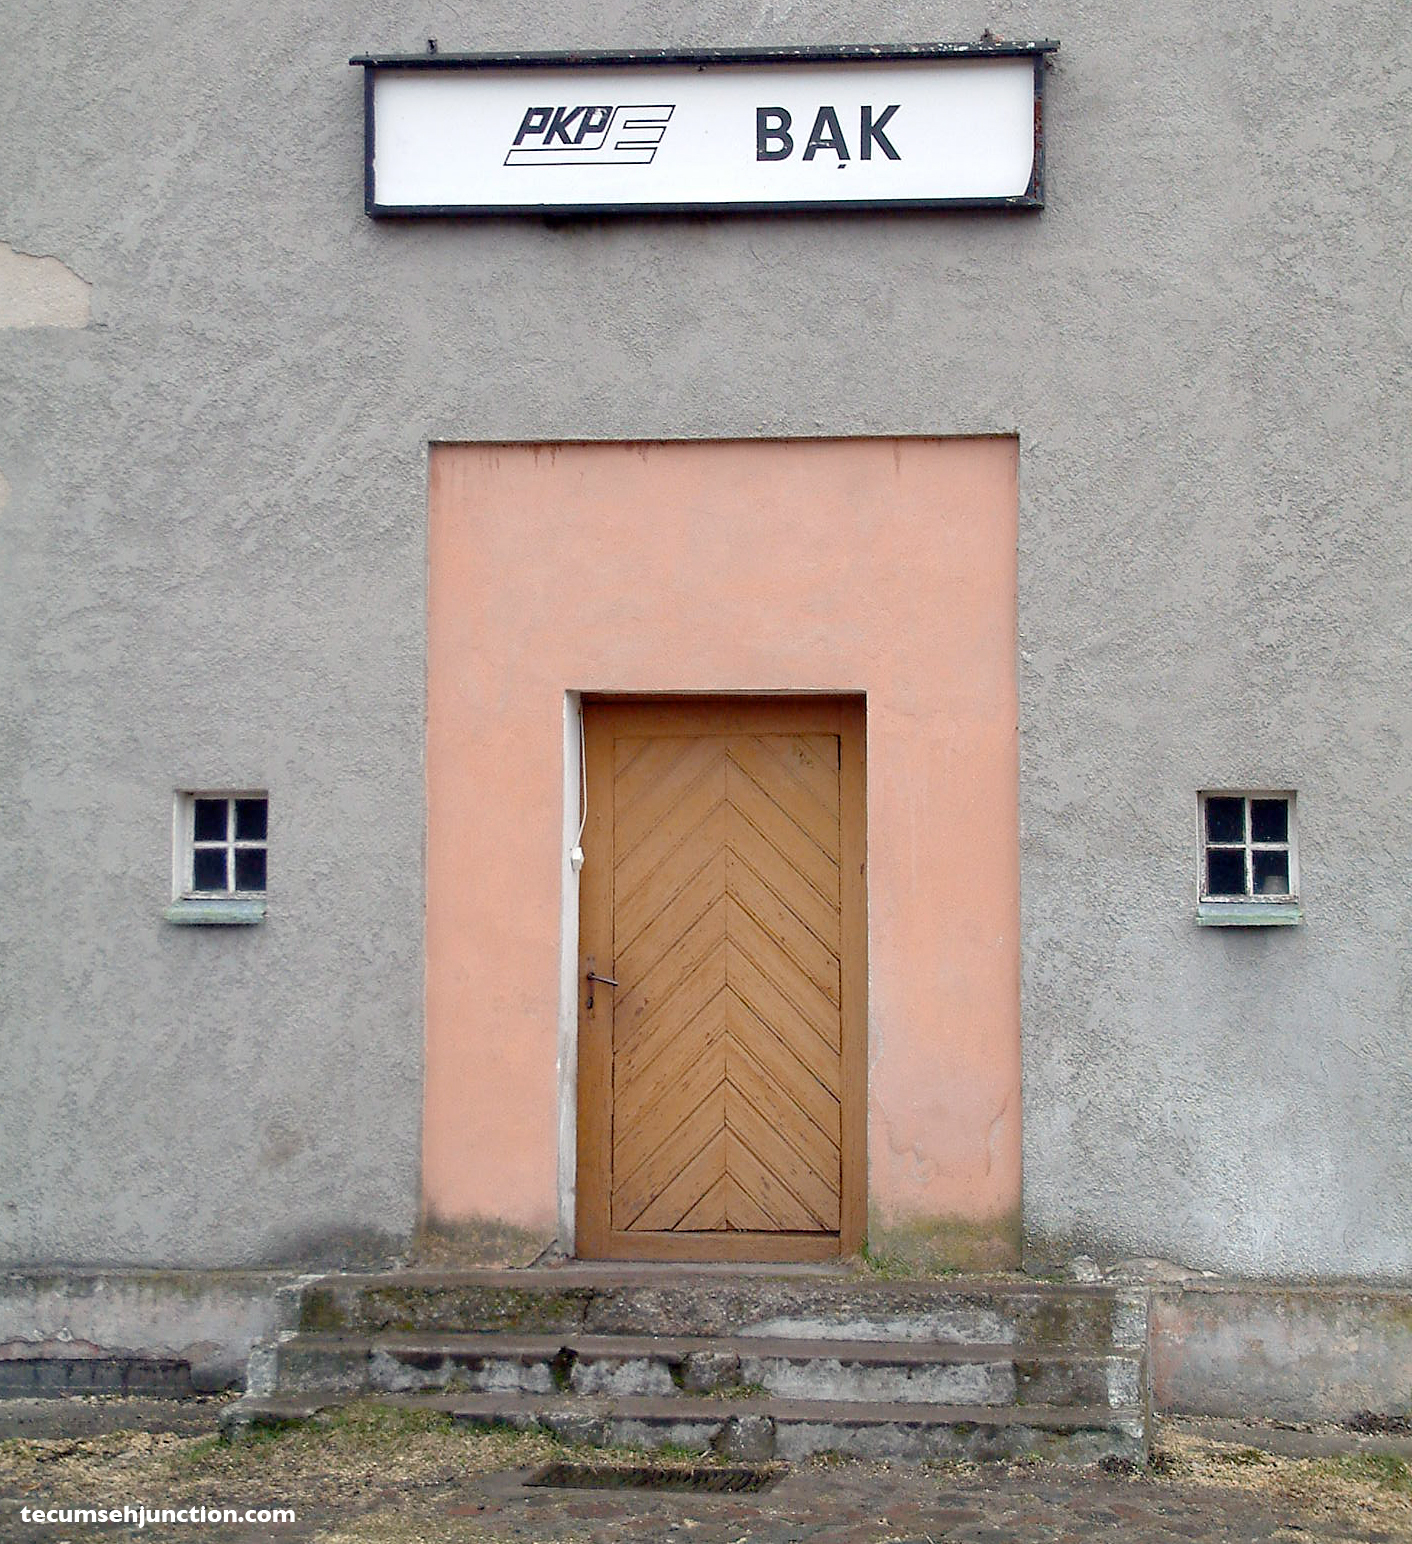 Back entrance to the station